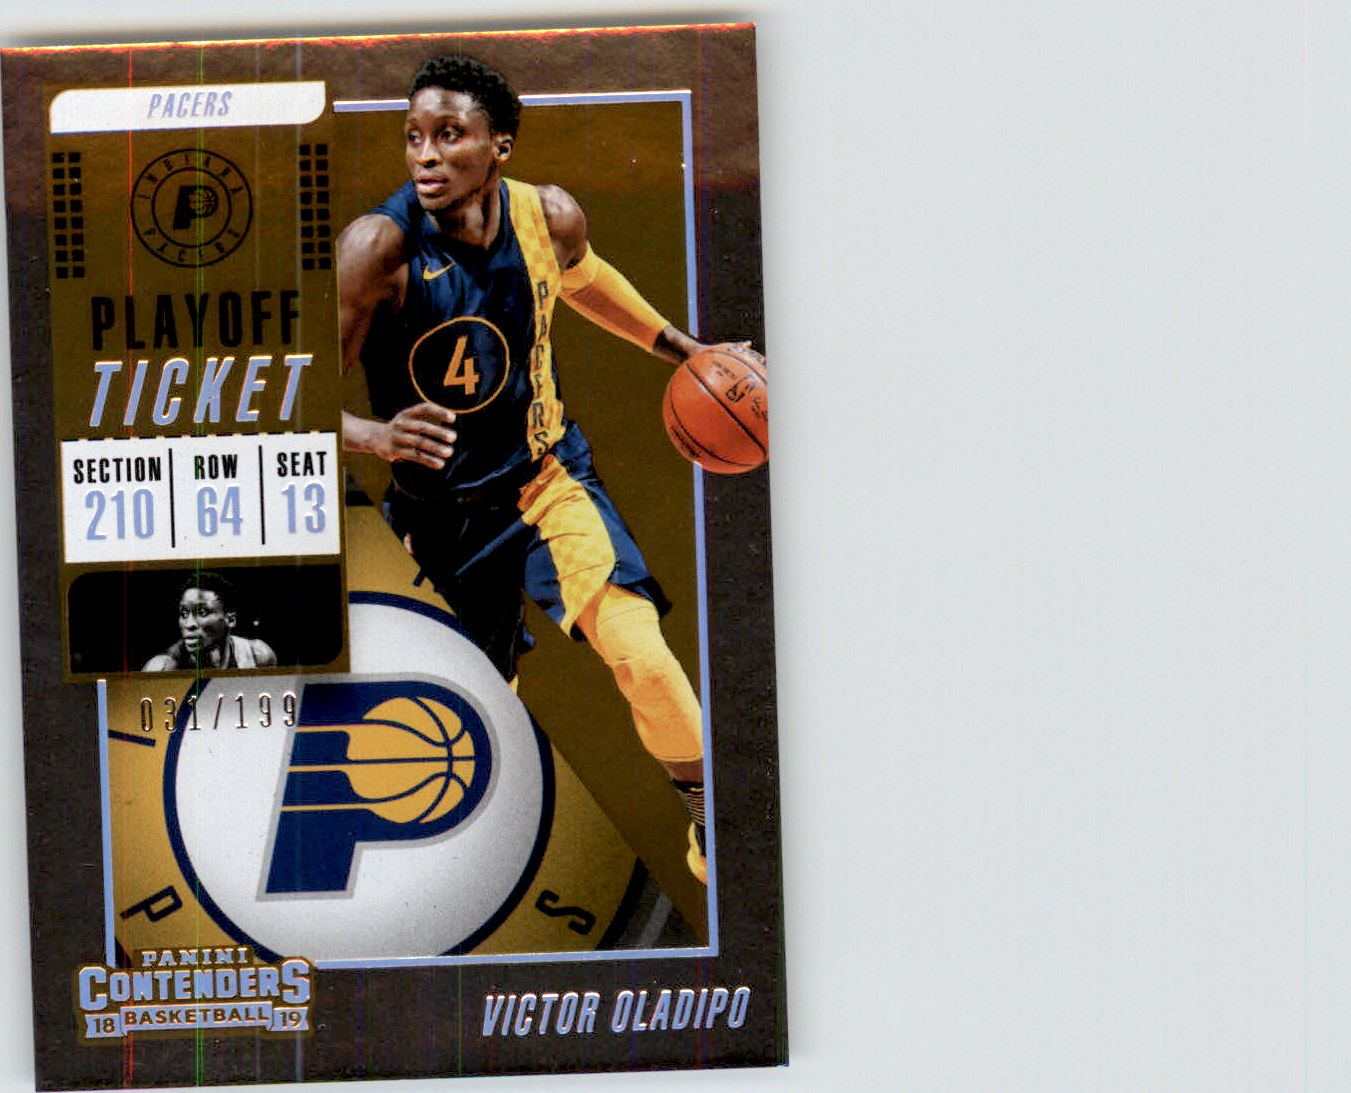 2018-19 Panini Contenders Playoff Ticket #58 Victor Oladipo